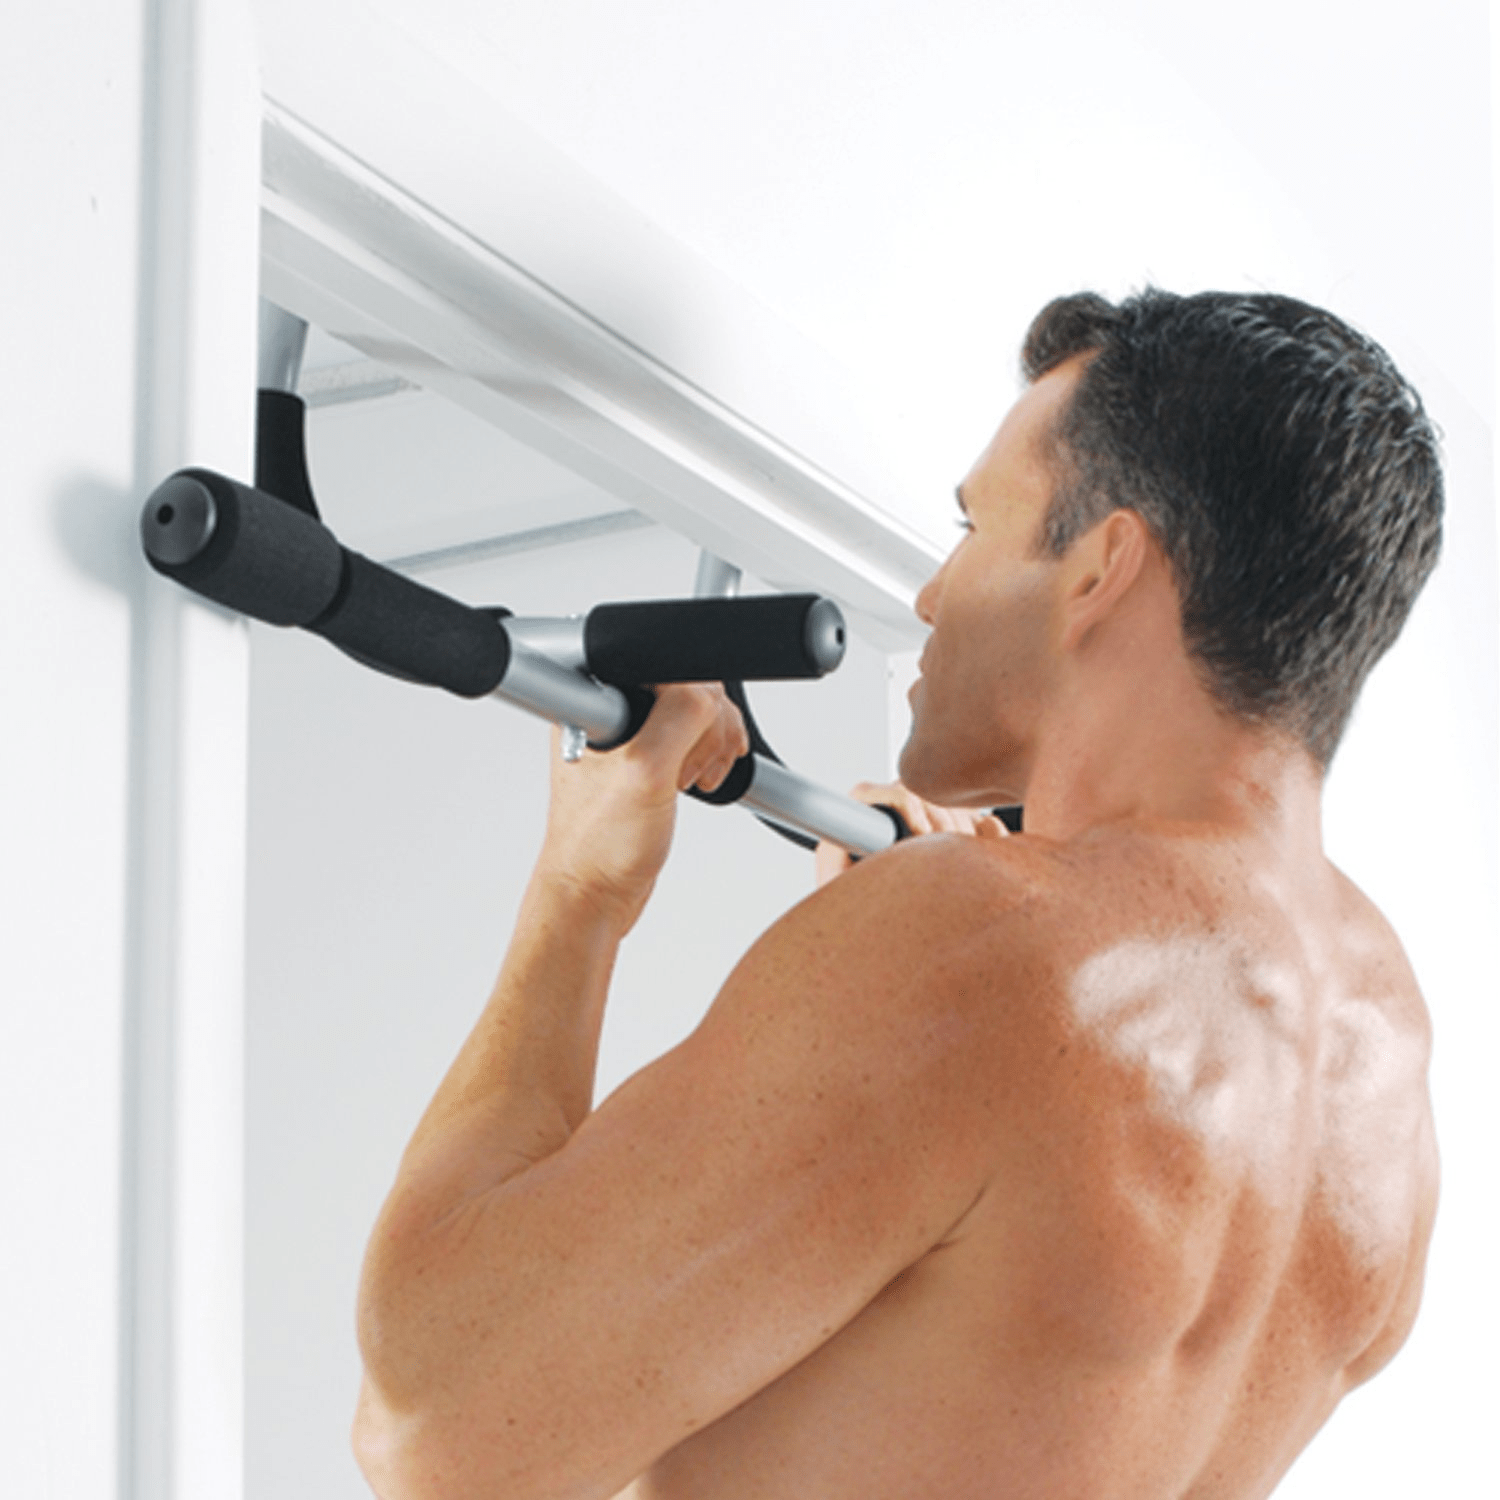 Pull up bar exercise